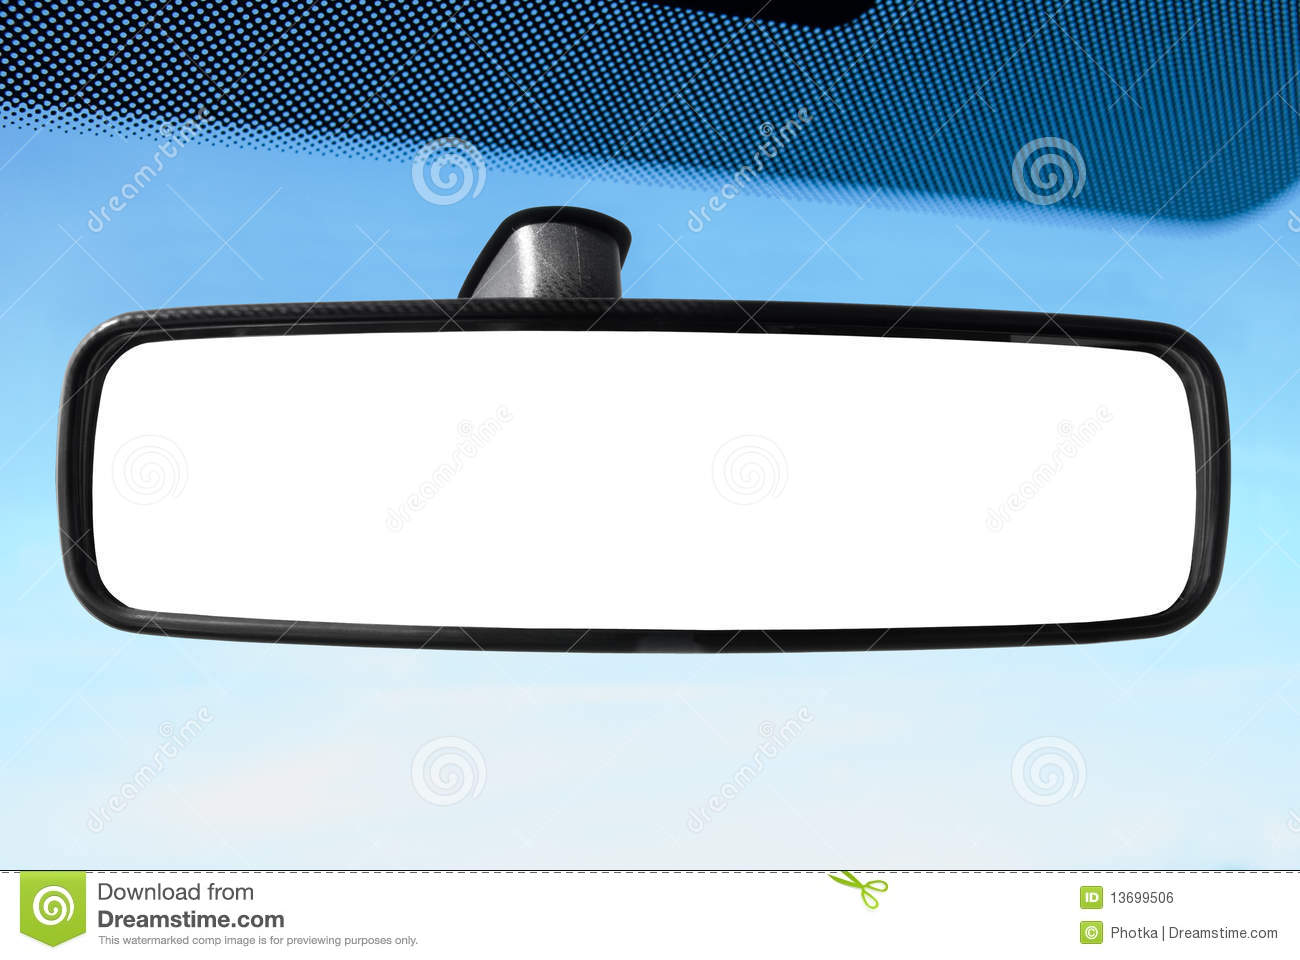 rear view mirror royalty free stock image image 13699506